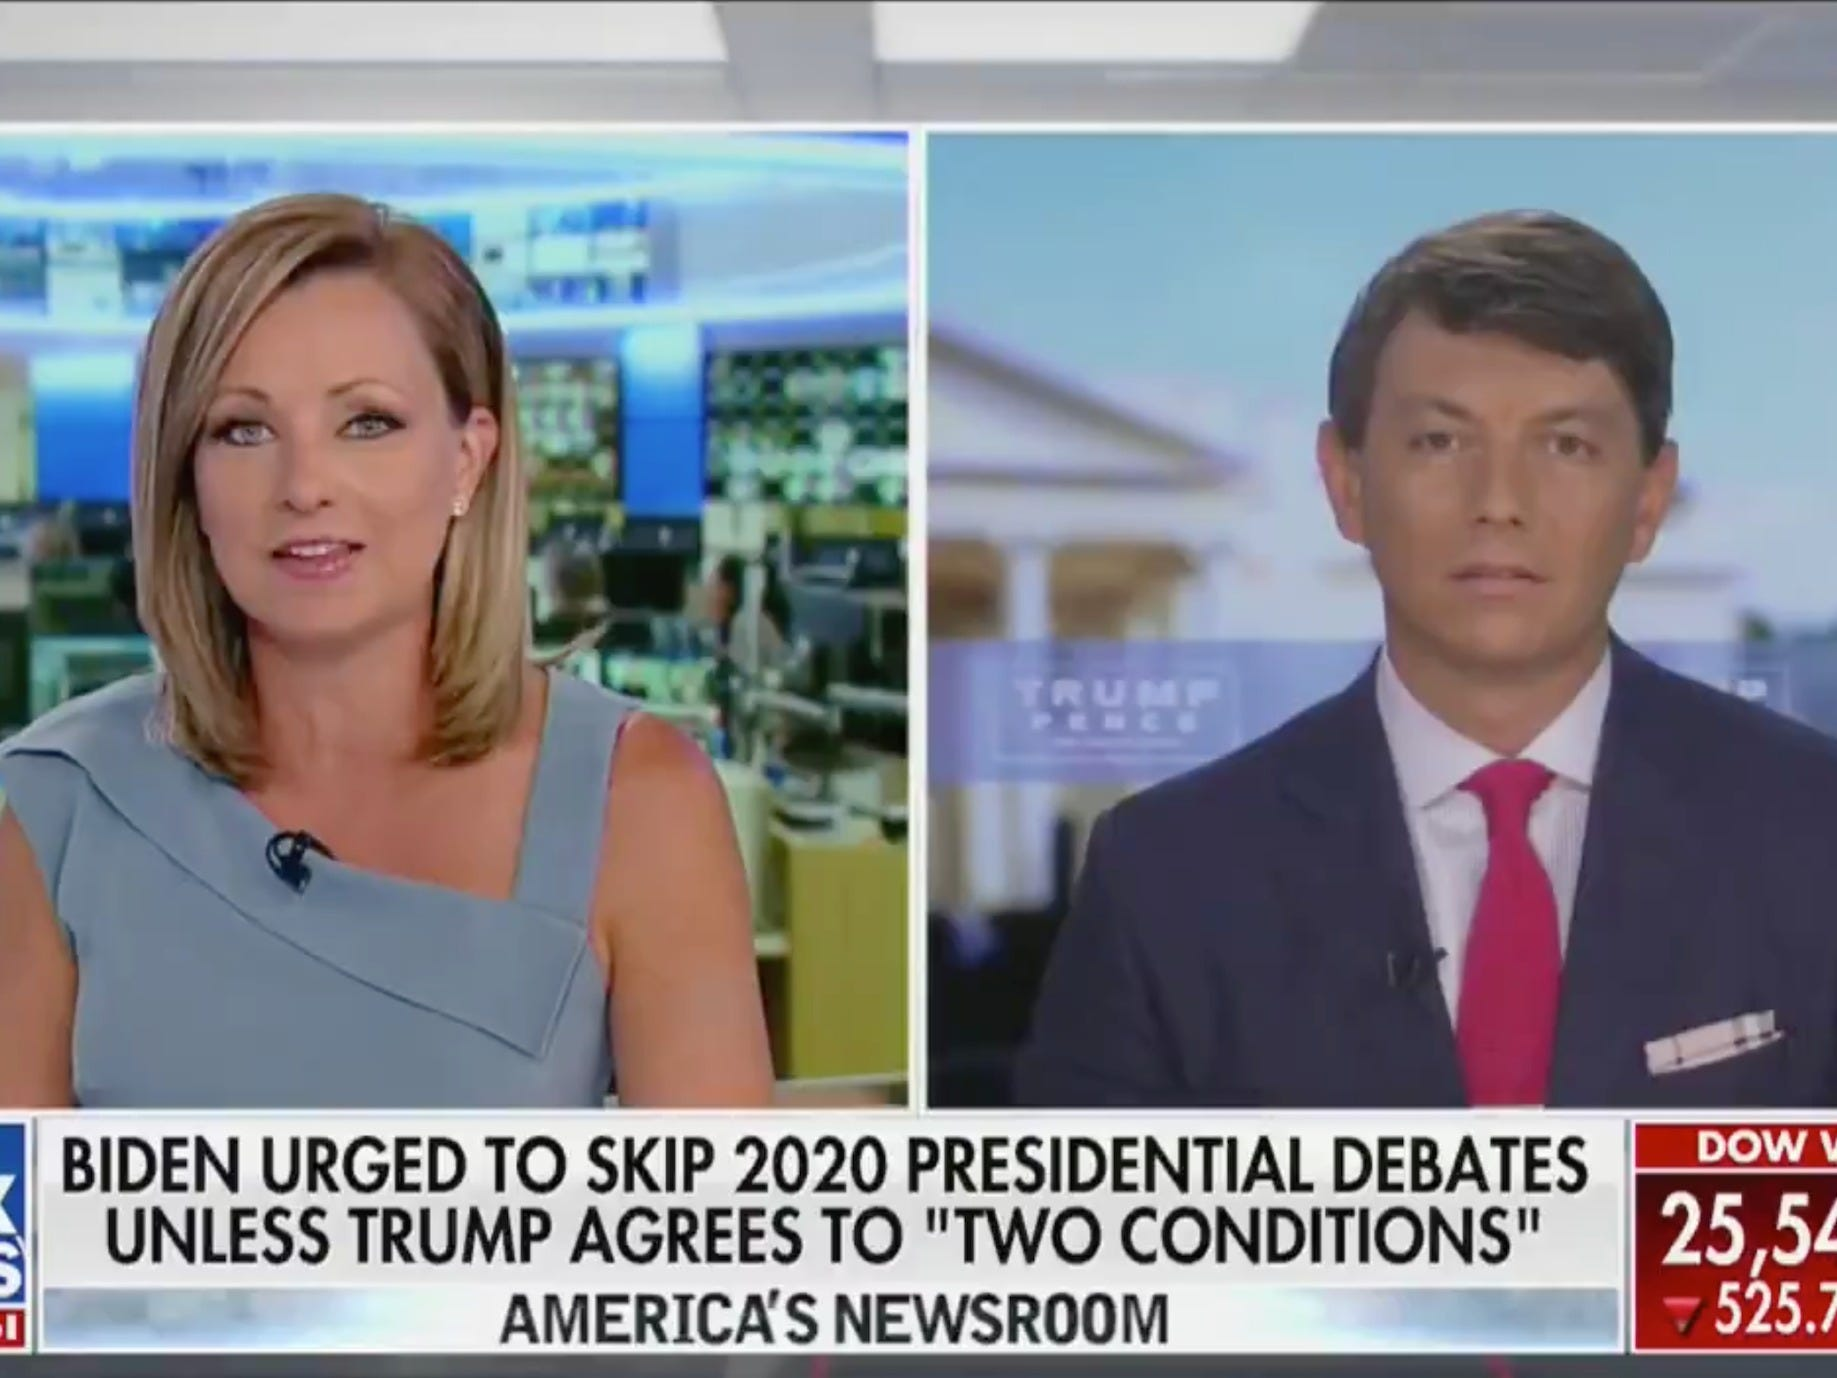 Fox News host refuses to listen to the Trump campaign's latest attack on Biden